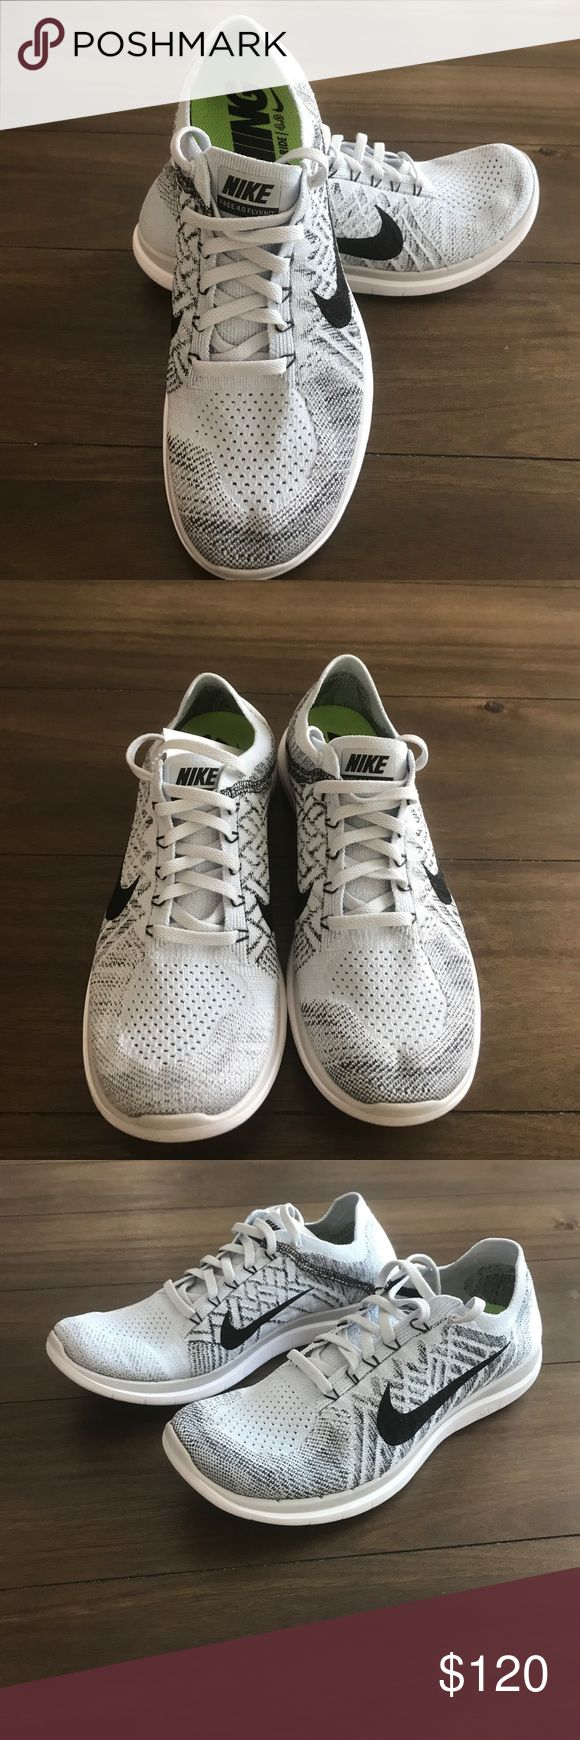 BRAND NEW NIKE FREE 4.0 FLYKNIT REALLY RARE COLOR TO FIND Brand new never  worn NIKE FREE 4.0 FLYKNIT RUNNING BAREFOOT RIDE they are a men's size 9  but fit ...